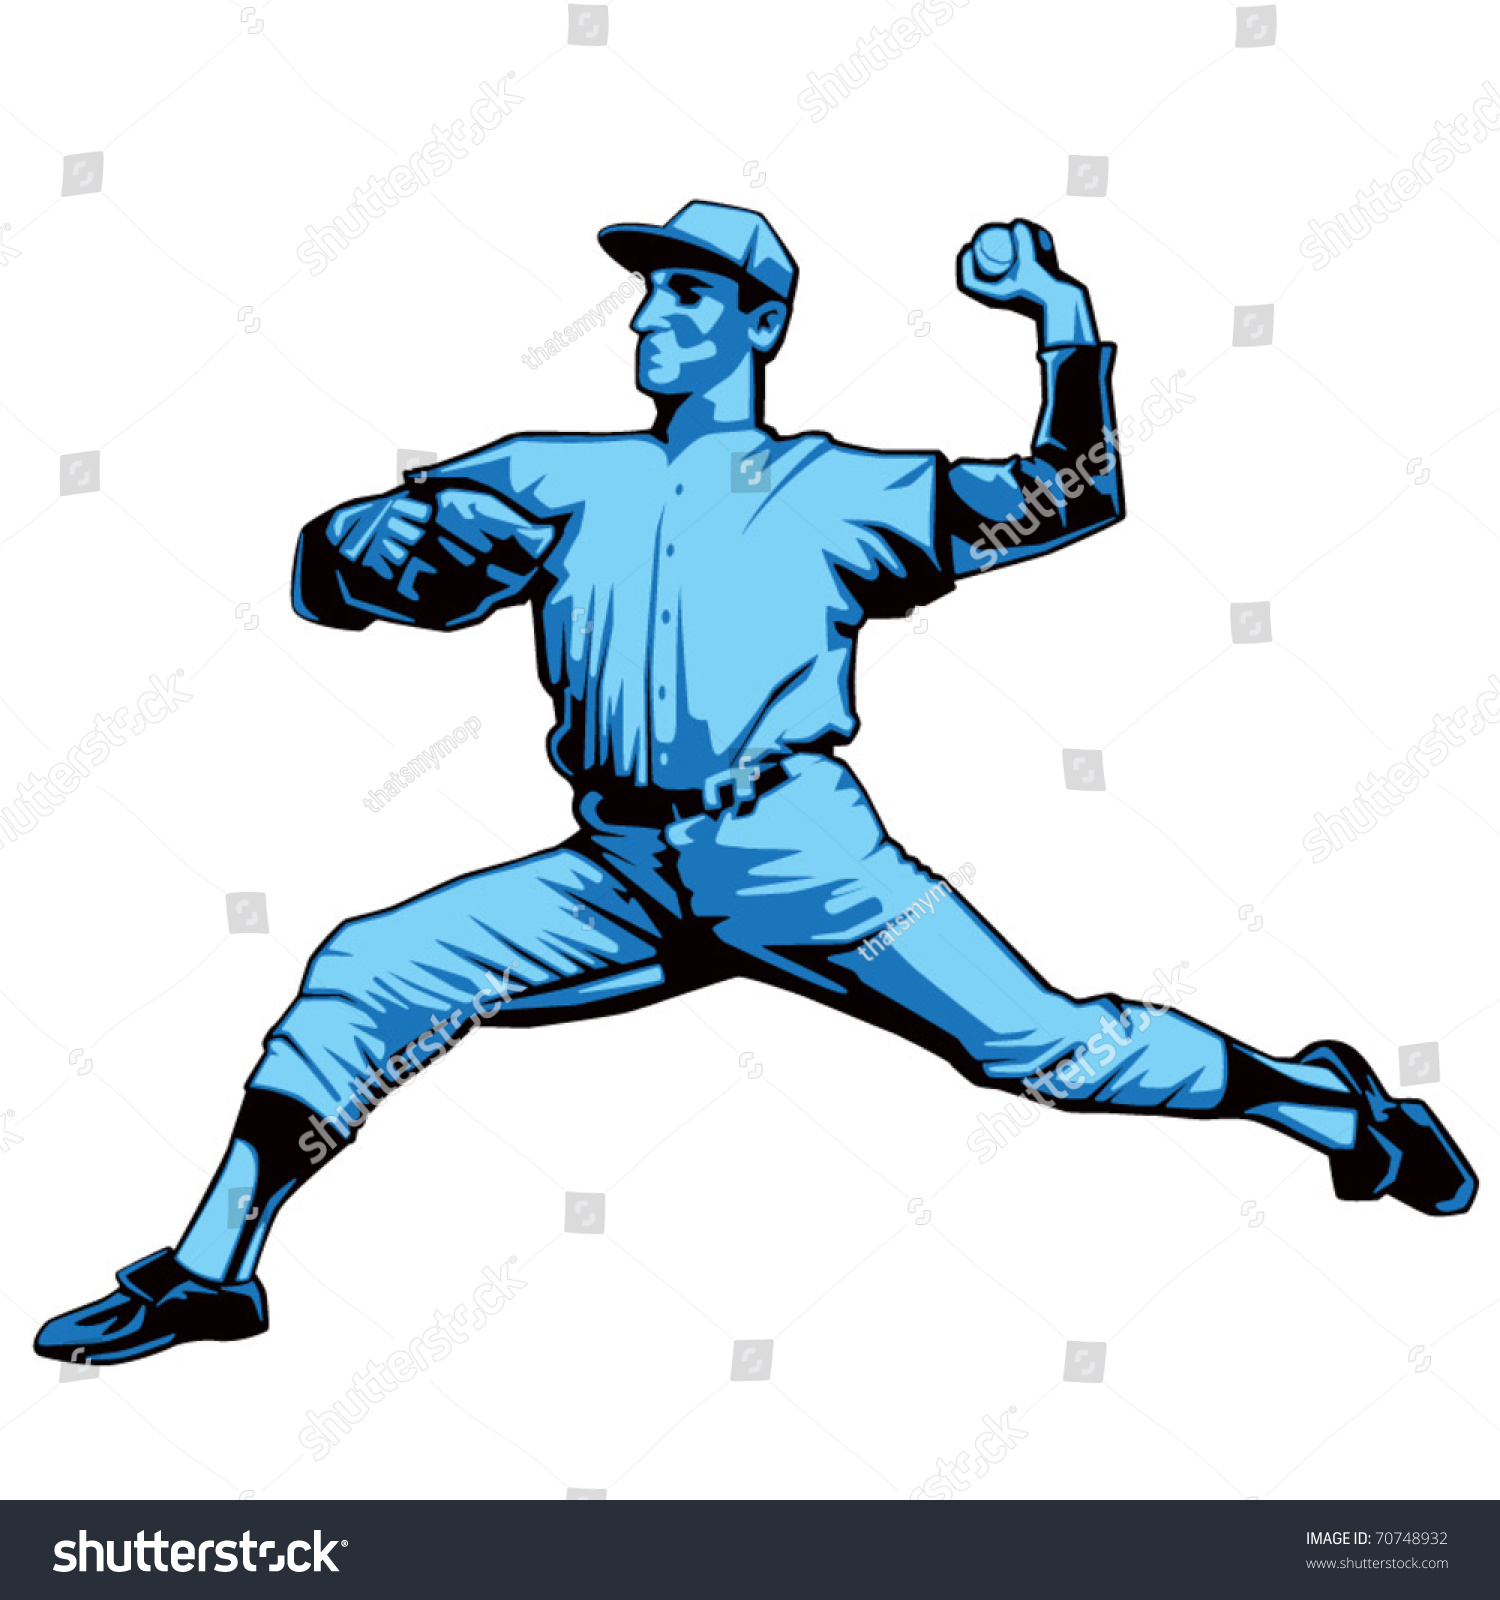 Baseball Pitcher Left Handed Stock Vector (Royalty Free) 70748932.